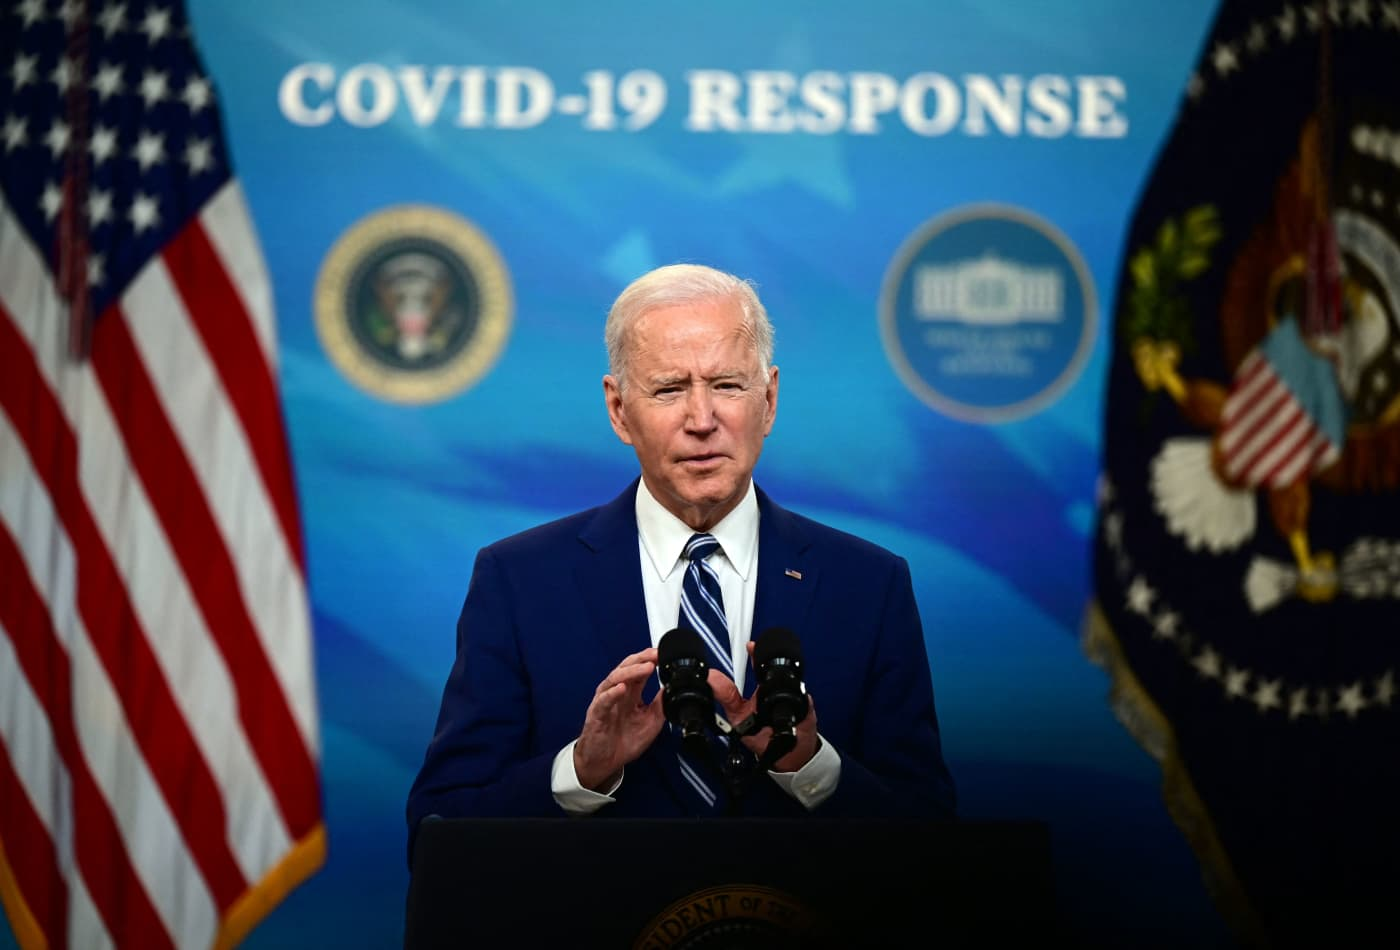 Biden says 90% of U.S. adults will be eligible for Covid shots by April 19 with sites within five miles of home